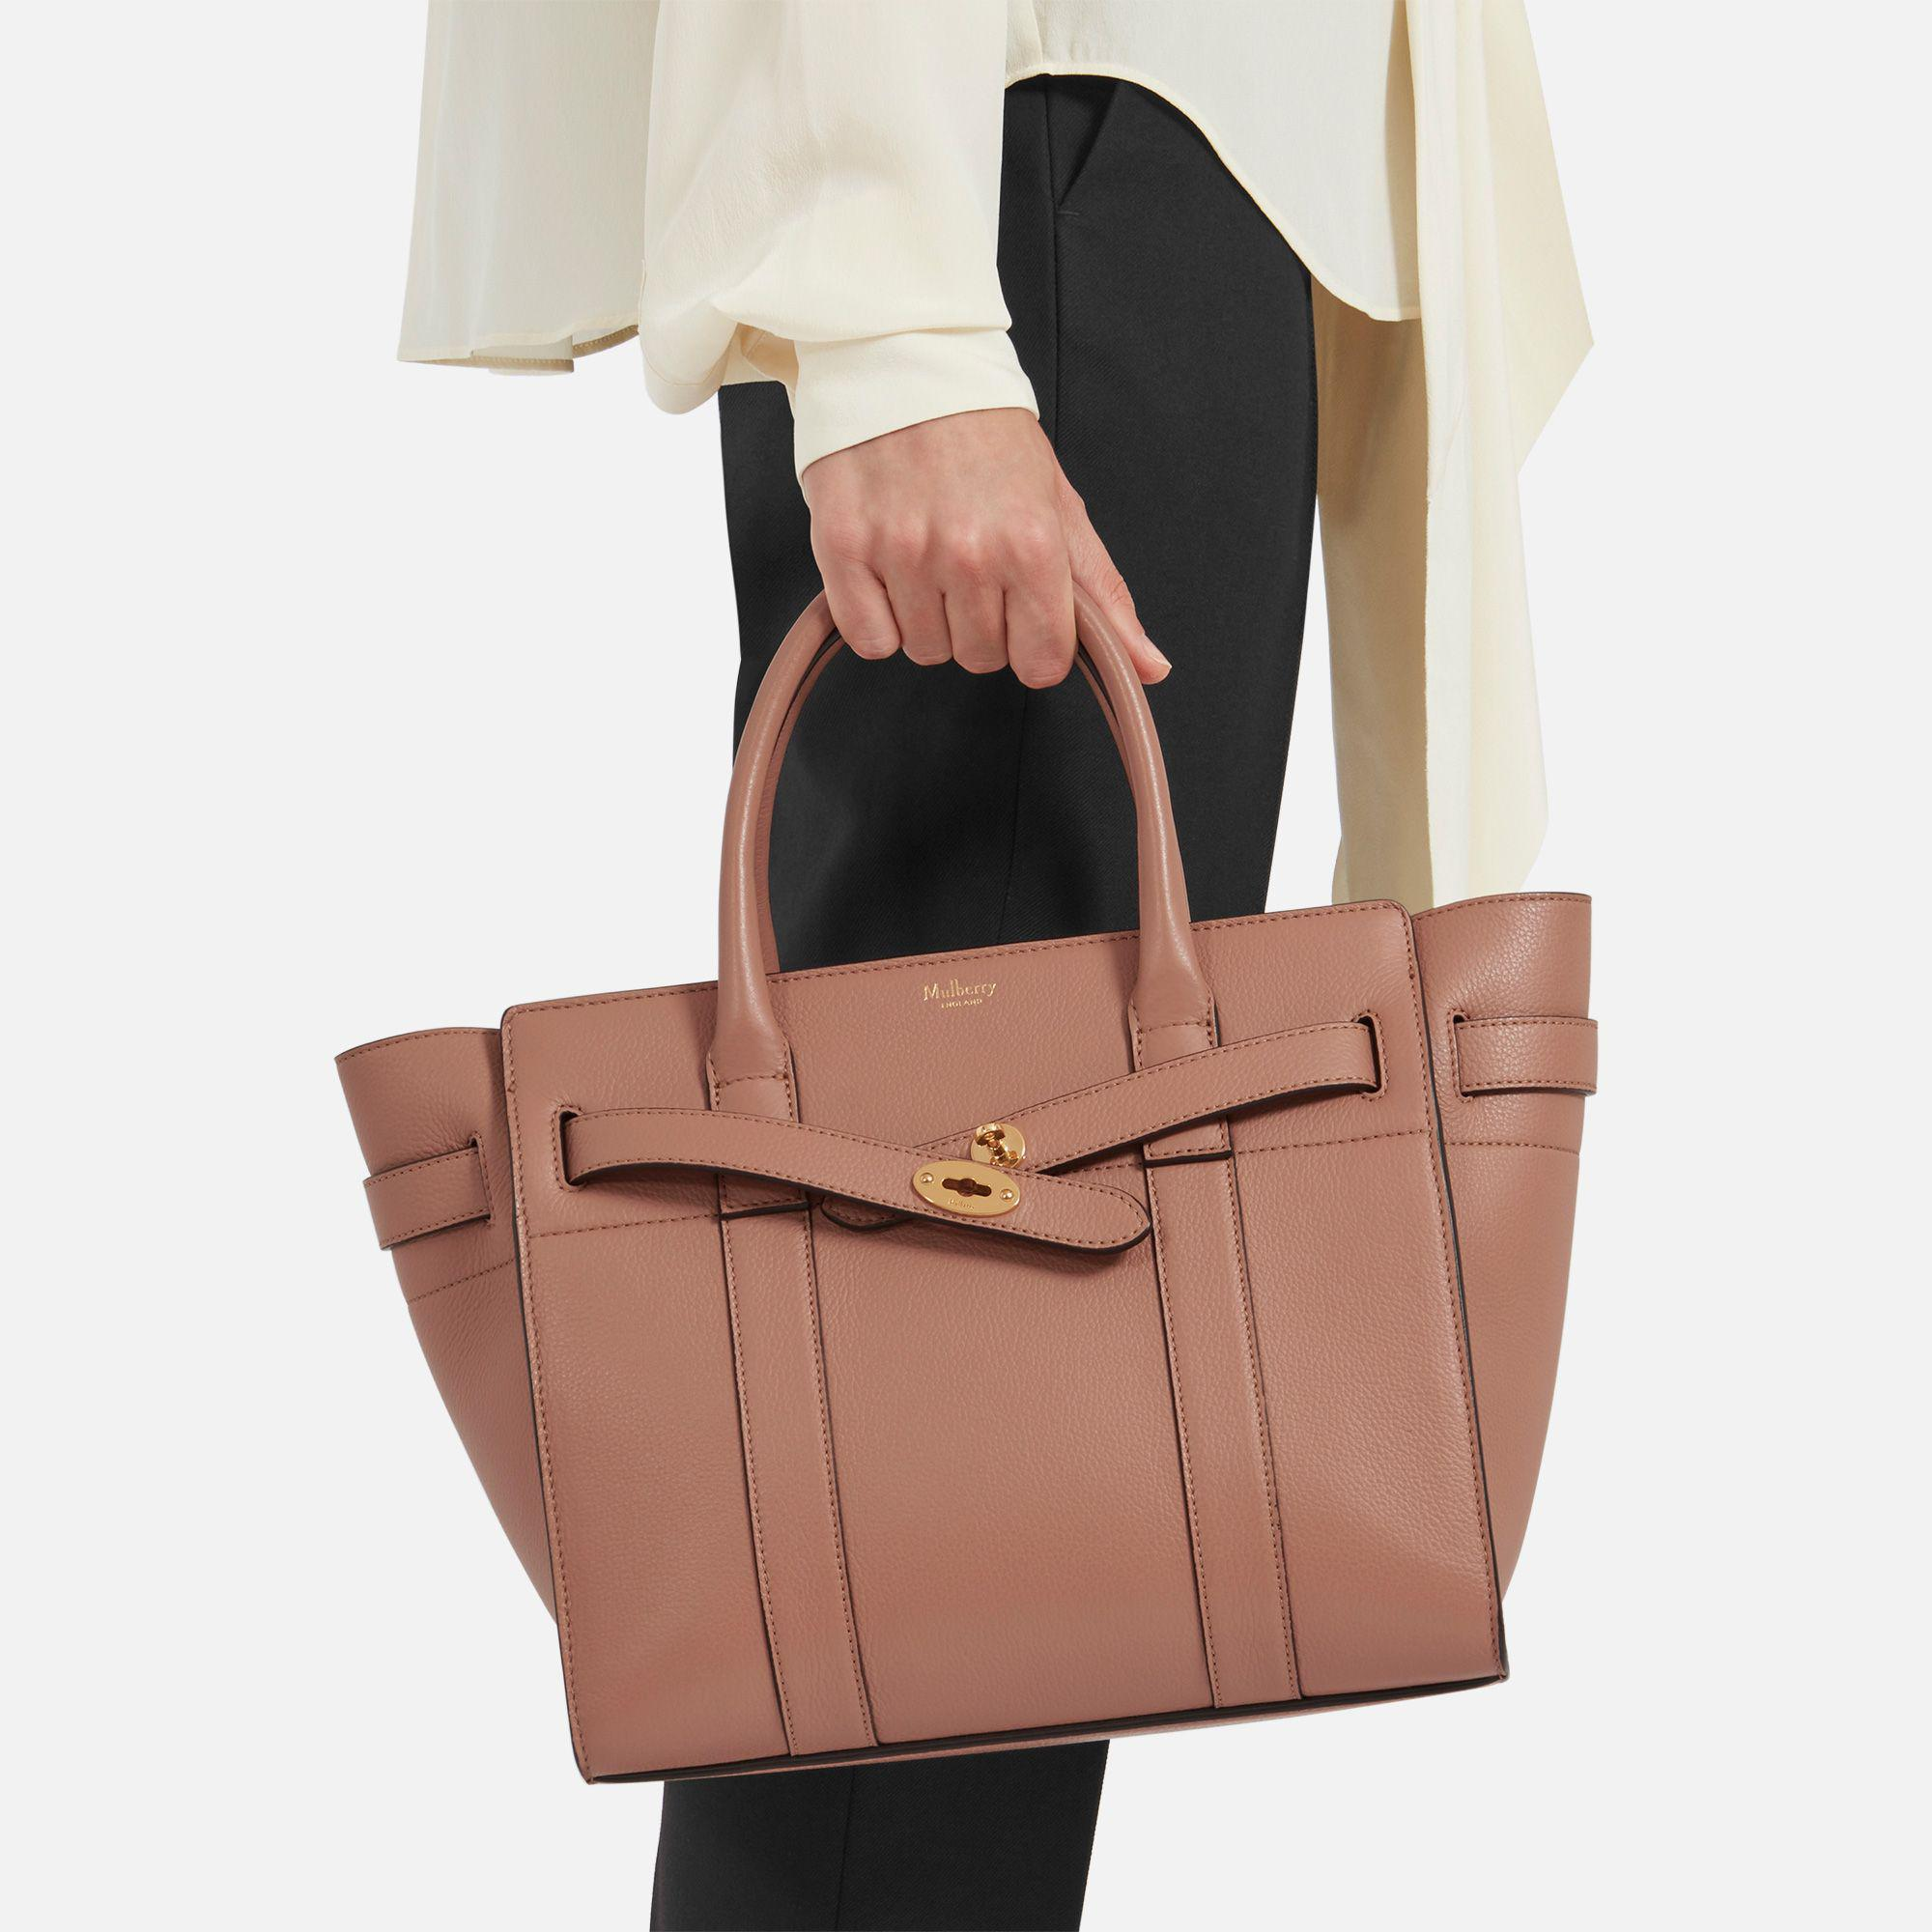 9737f20b4dc ... purchase mulberry brown small zipped bayswater lyst. view fullscreen  11ef6 9ccc9 ...